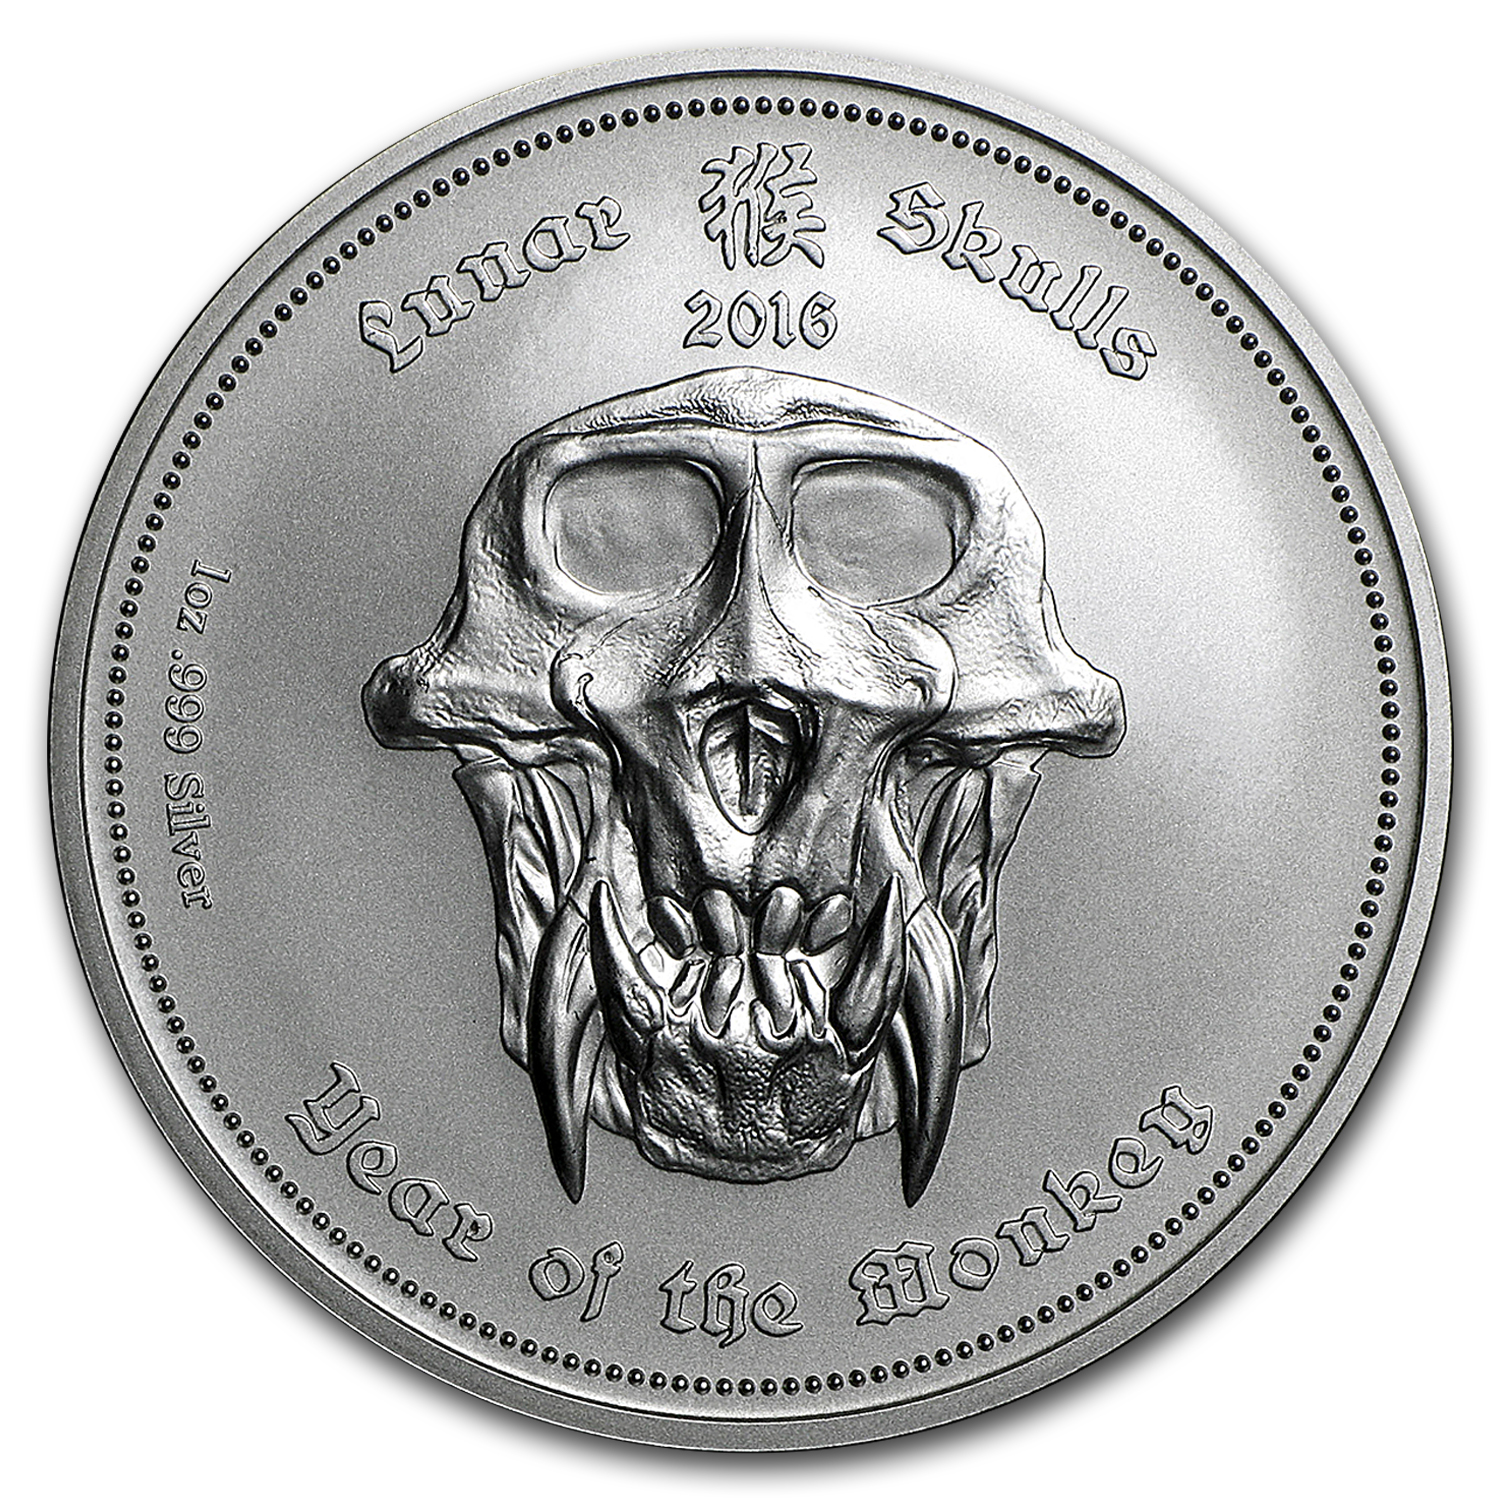 2016 Palau 1 oz Silver Lunar Skulls Year of the Monkey (Capsule)